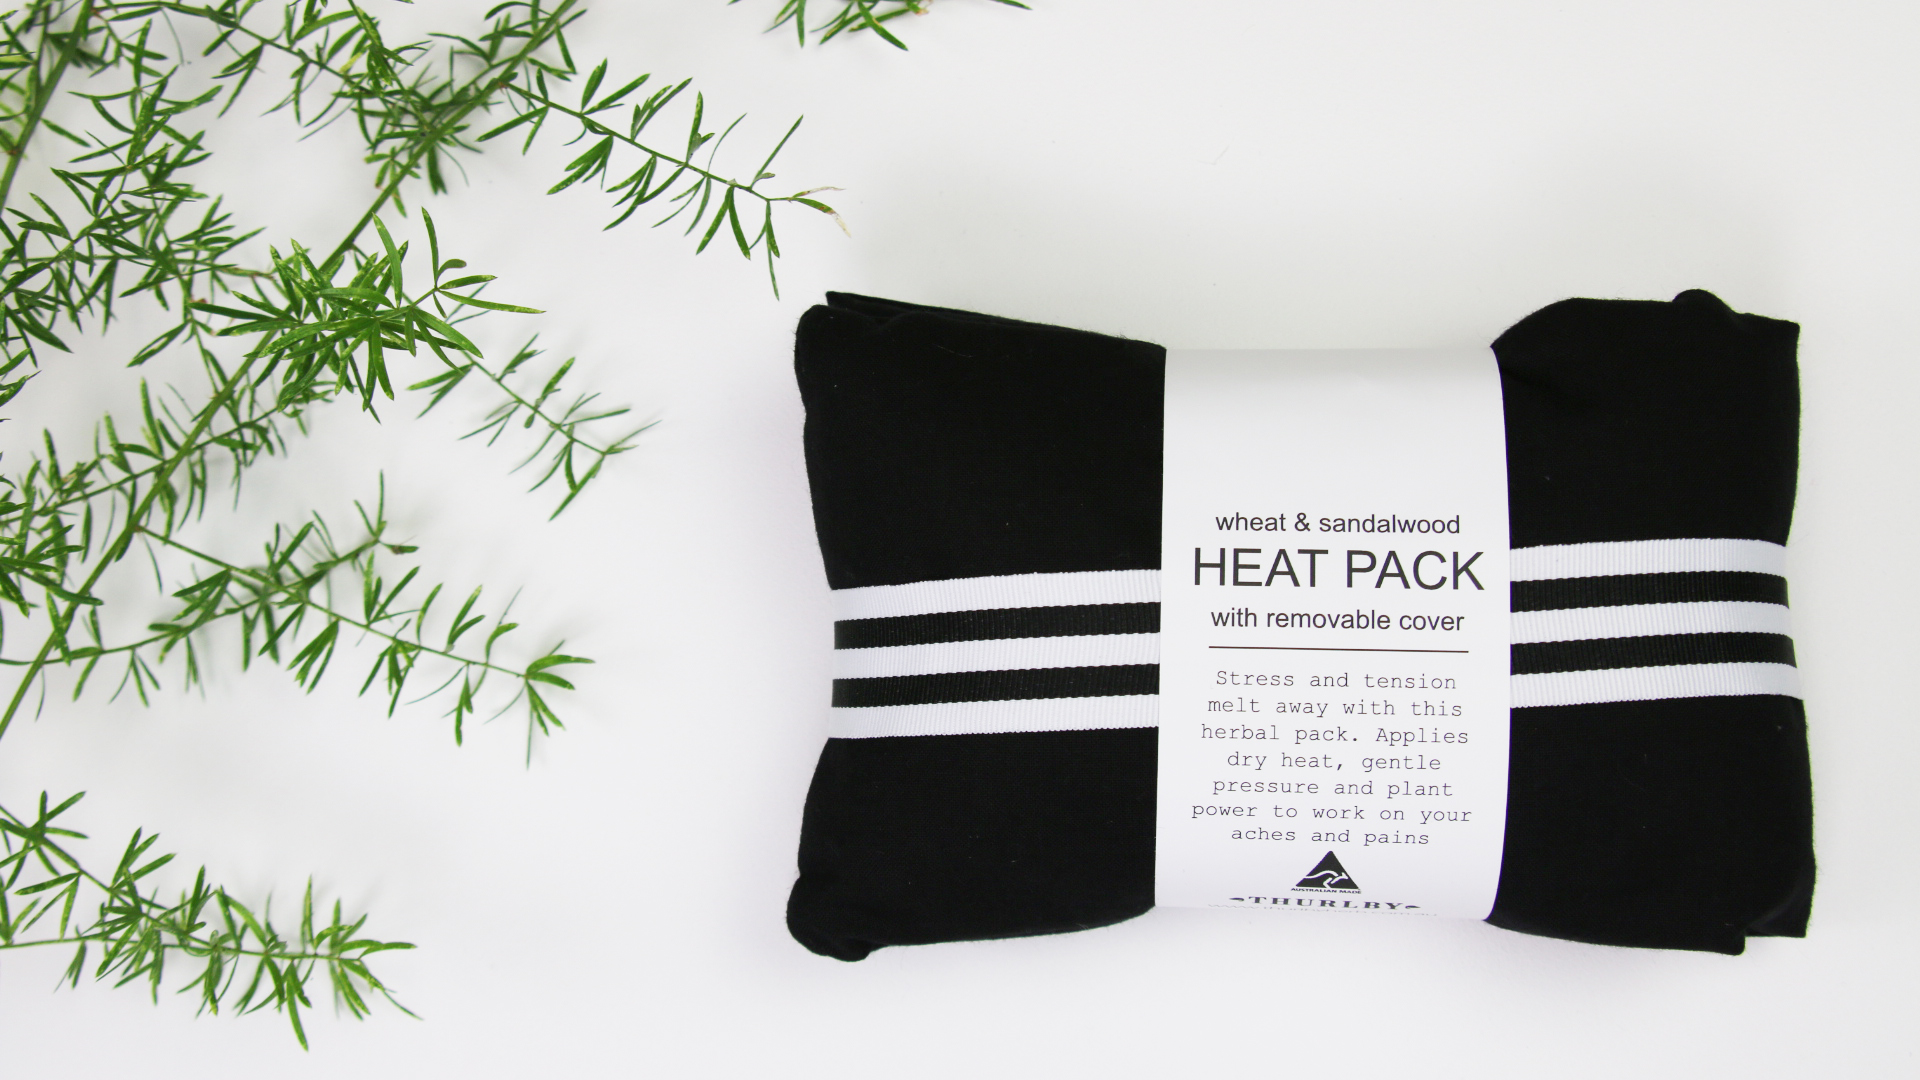 Tailor made heat pack